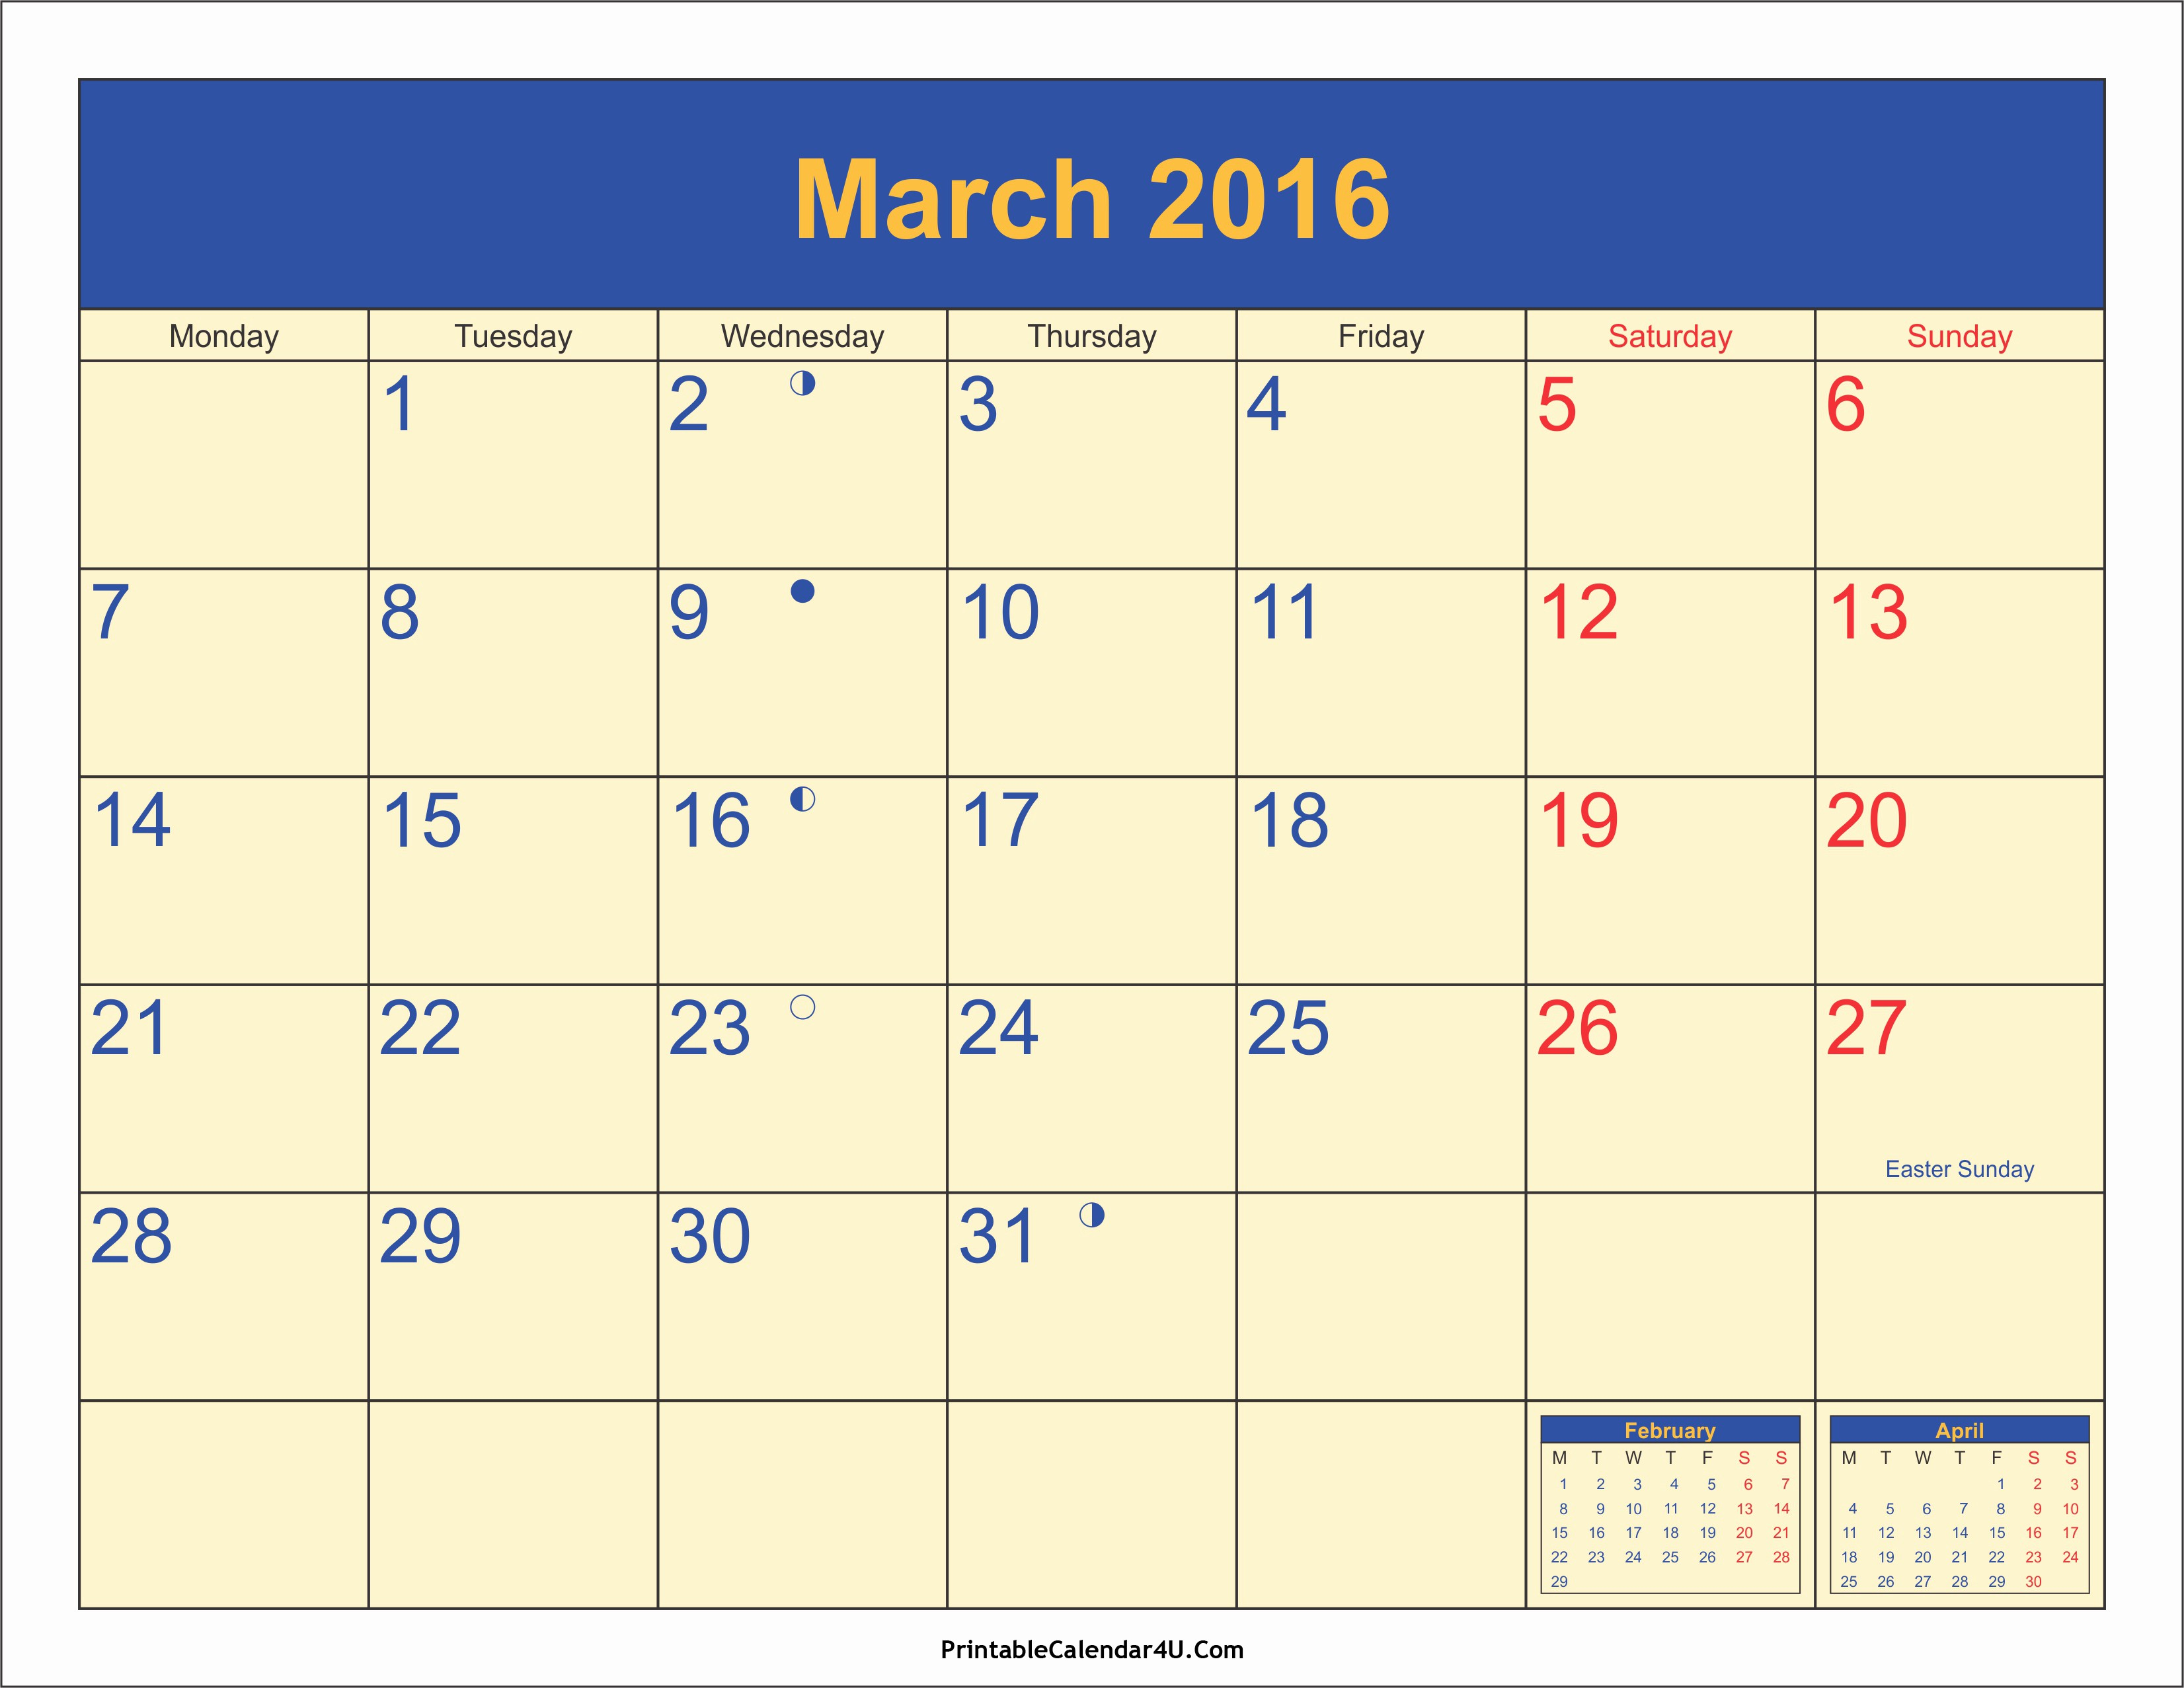 Calendar 2016 Printable with Holidays Lovely March 2016 Calendar Printable Calendar 2016 2017